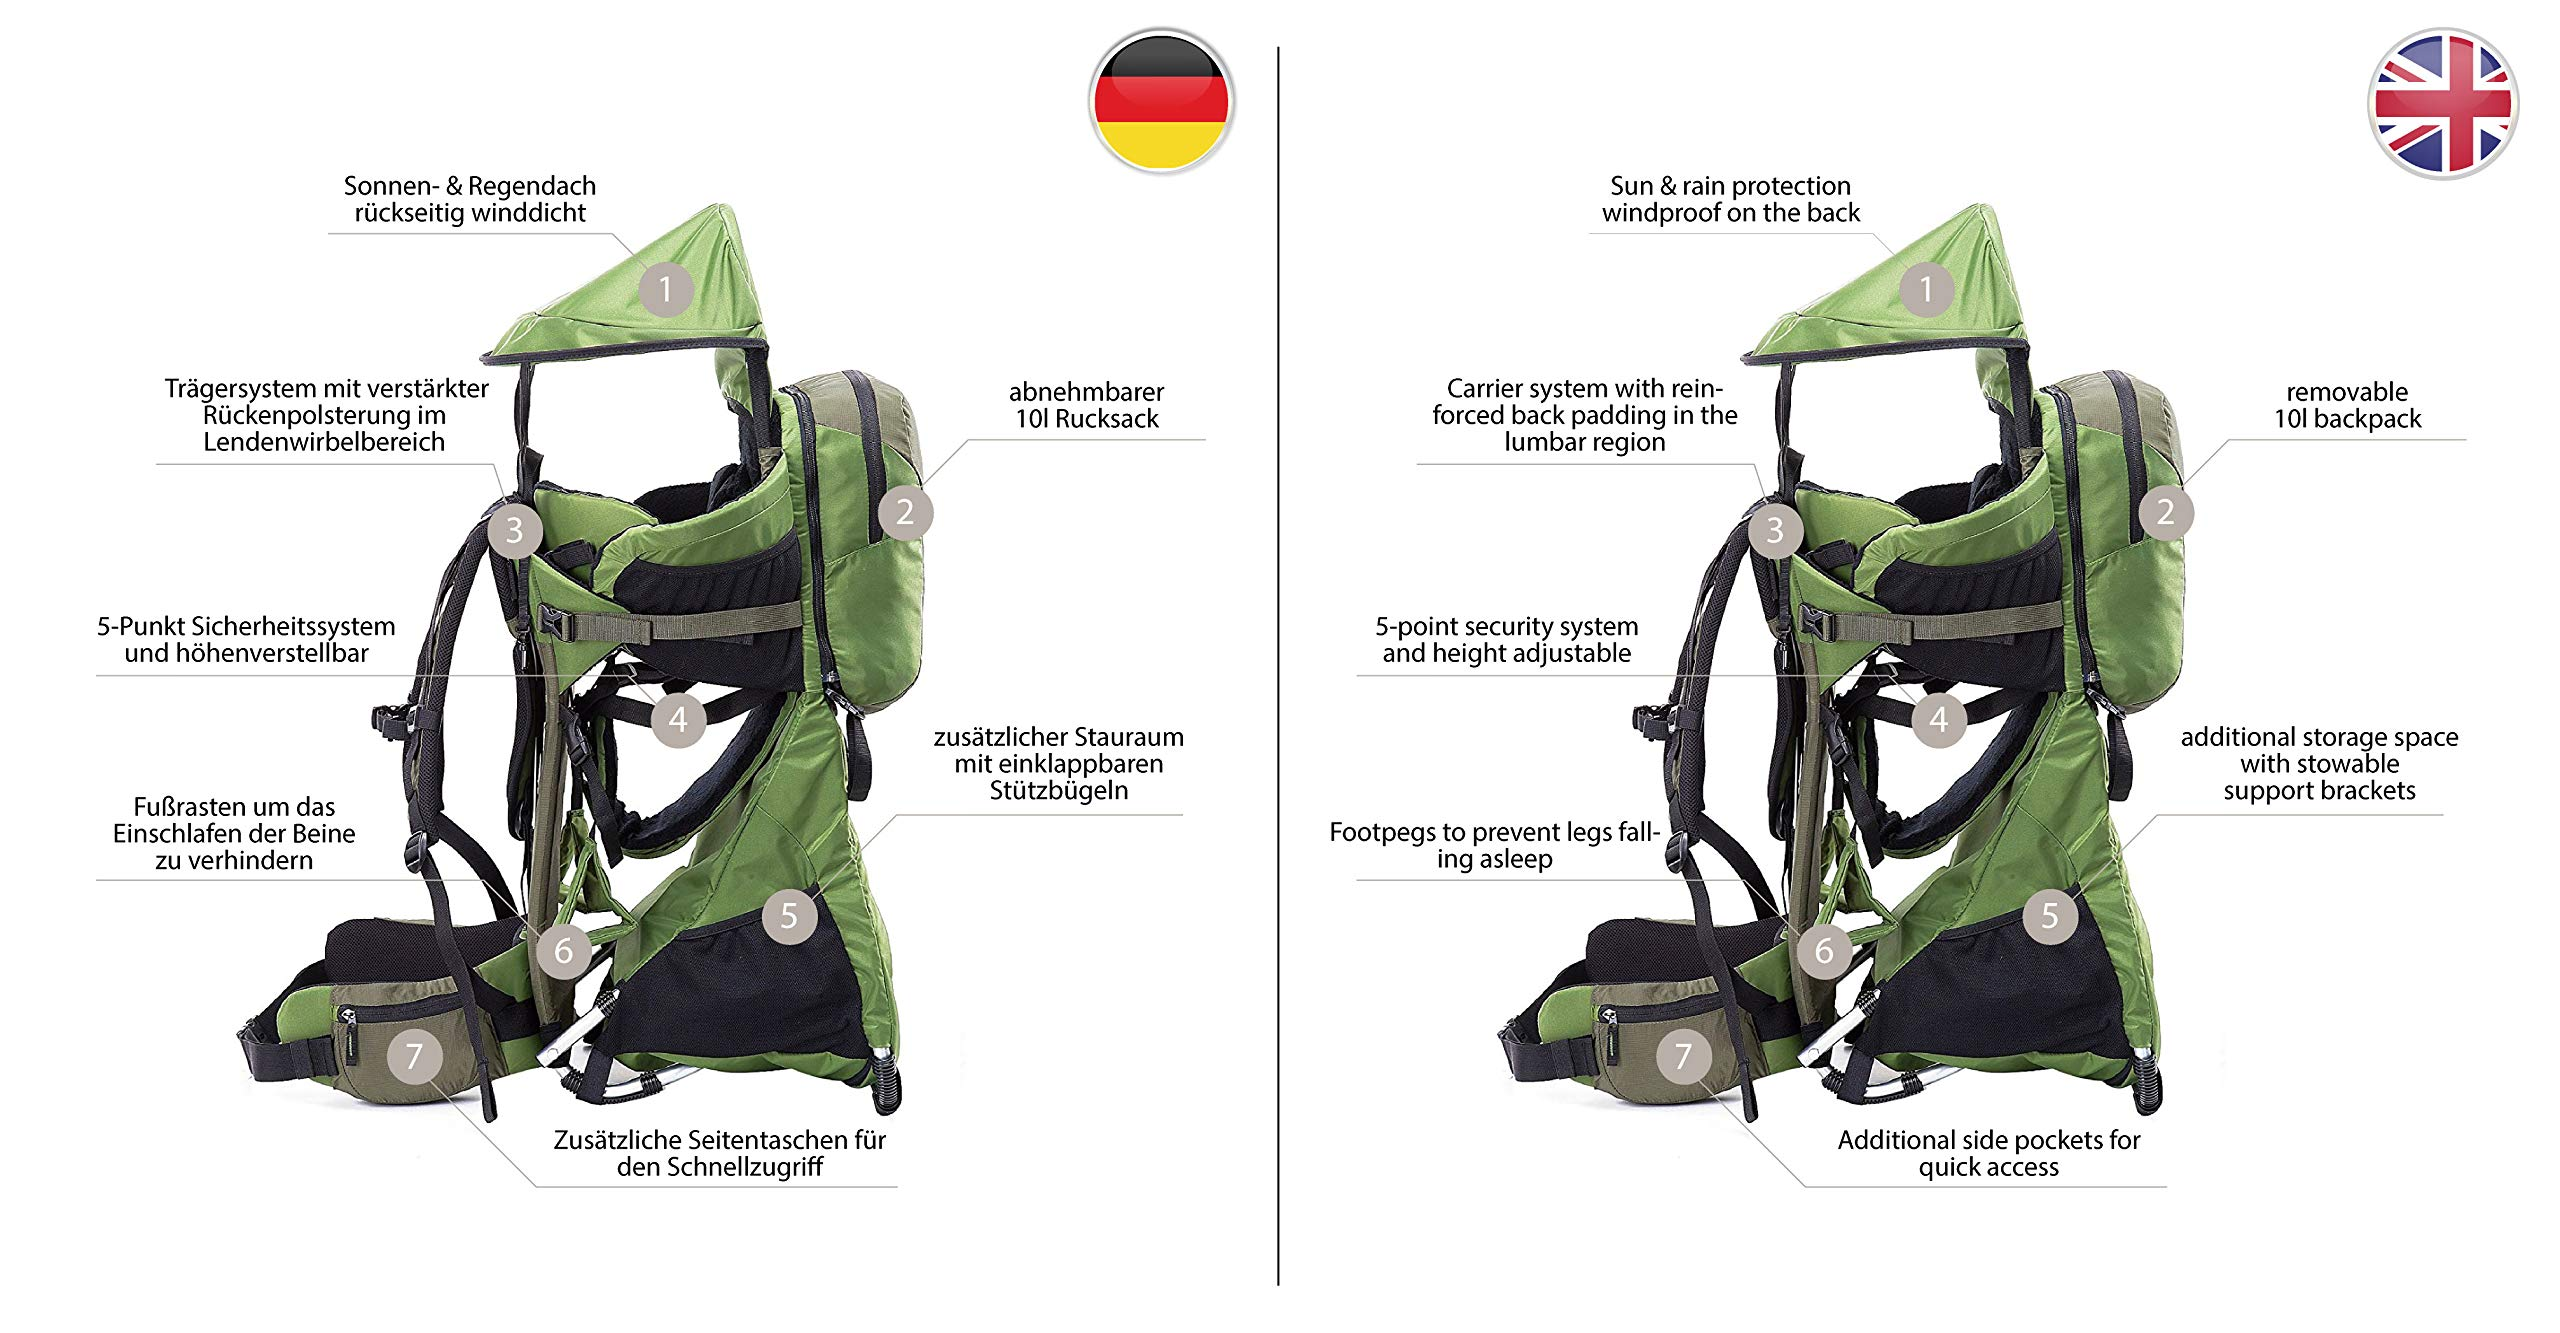 MONTIS RANGER PRO - Premium Backpack/Child Carrier - Holds up to 25kg M MONTIS OUTDOOR 89cm high, 37cm wide | Carries loads up to 25kg, seat bag 30L | Approx. 2.3kg (without extras) Easy-clean outer material | Fully-adjustable, padded 5-point child harness Super soft plush lining, raised wind guard, can be loaded from both sides | Fully-adjustable carry support system, additional ergonomic options for women | Comfortable waist belt for extended wearing with side pockets 3